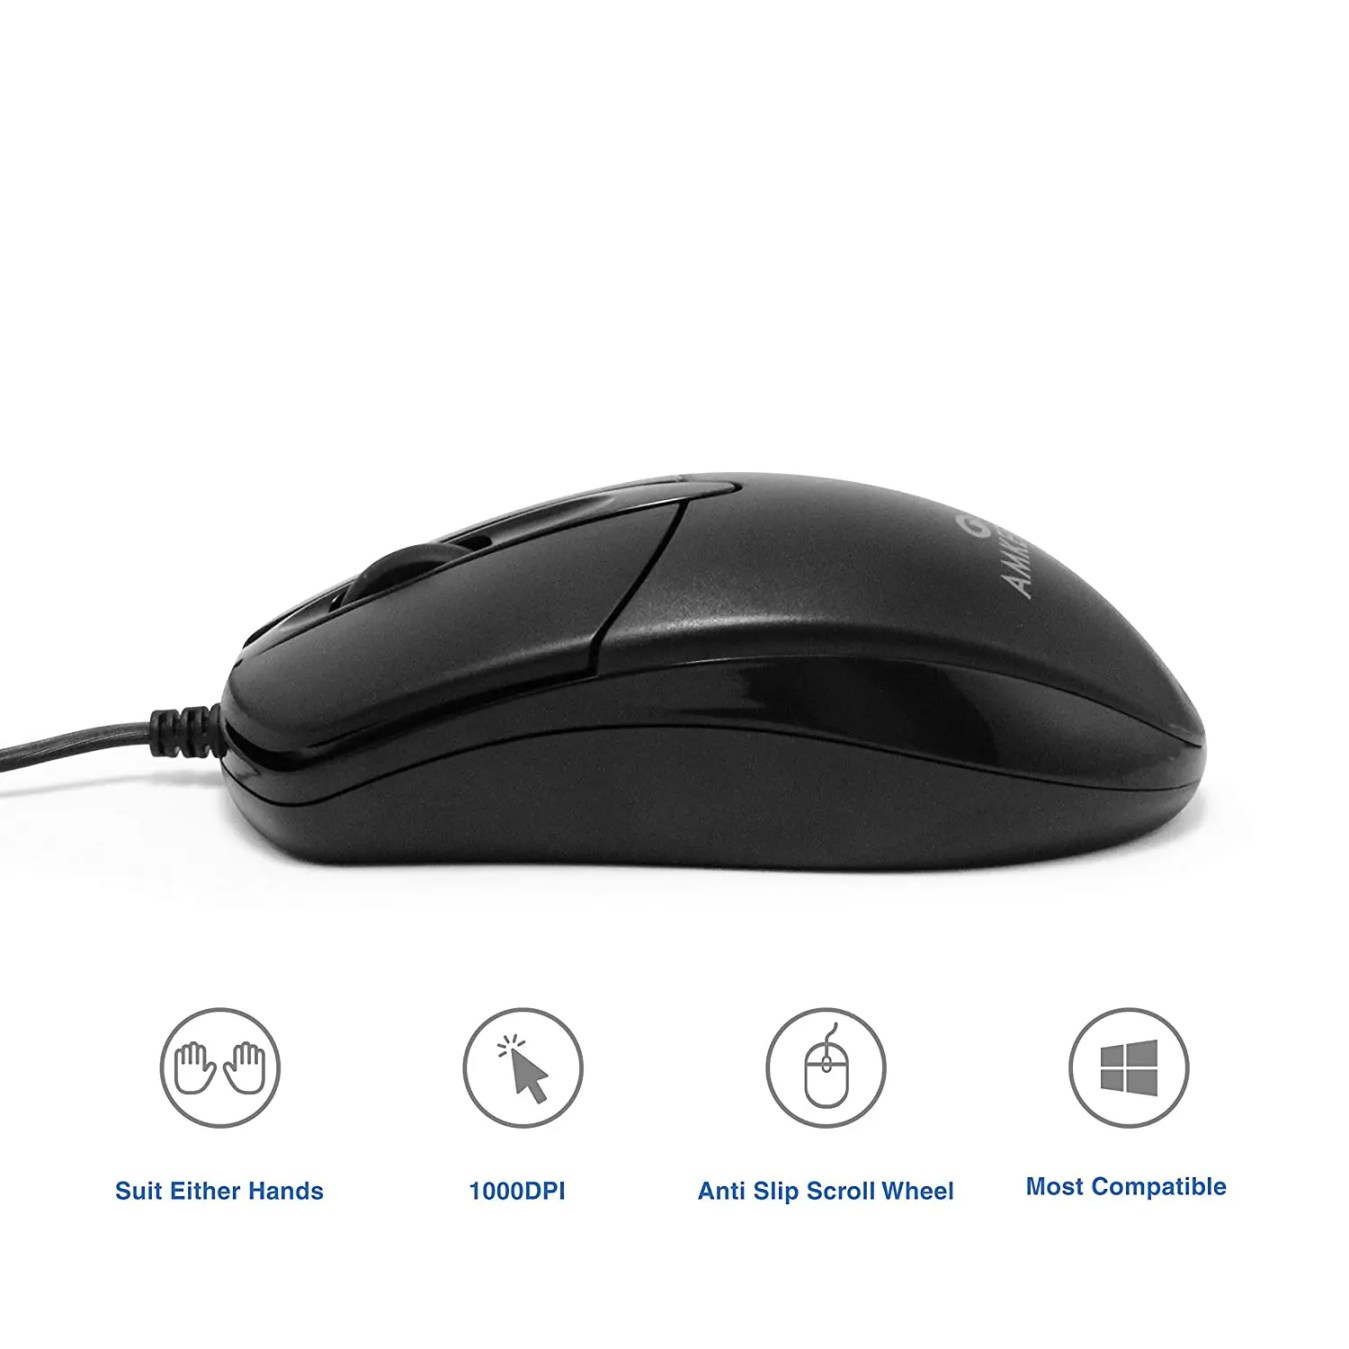 USB connected wired mouse